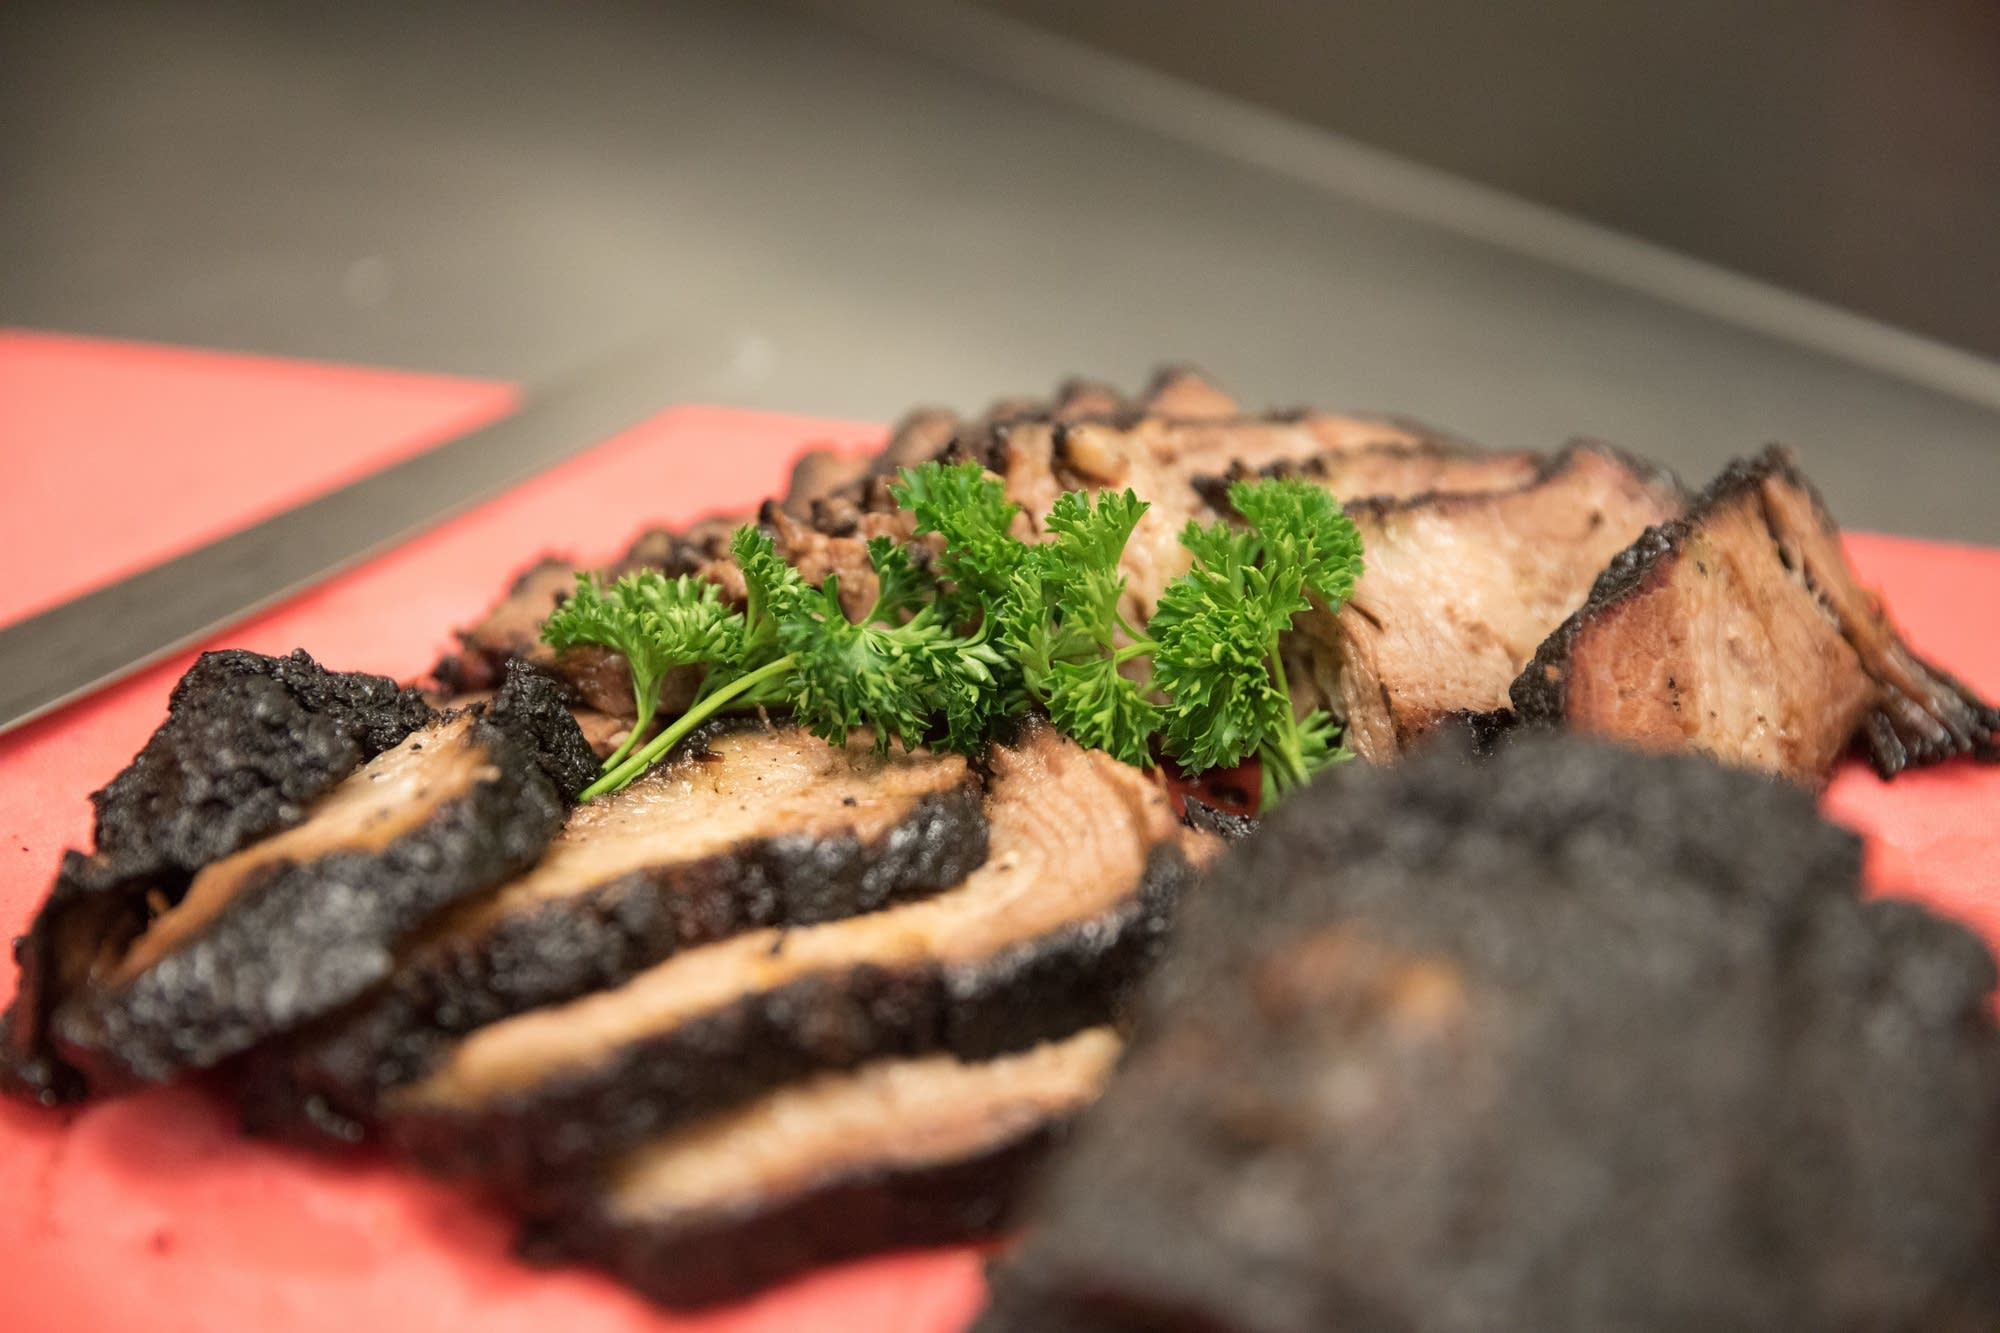 Beef brisket is served to members of the Onyx Culinary Collective.